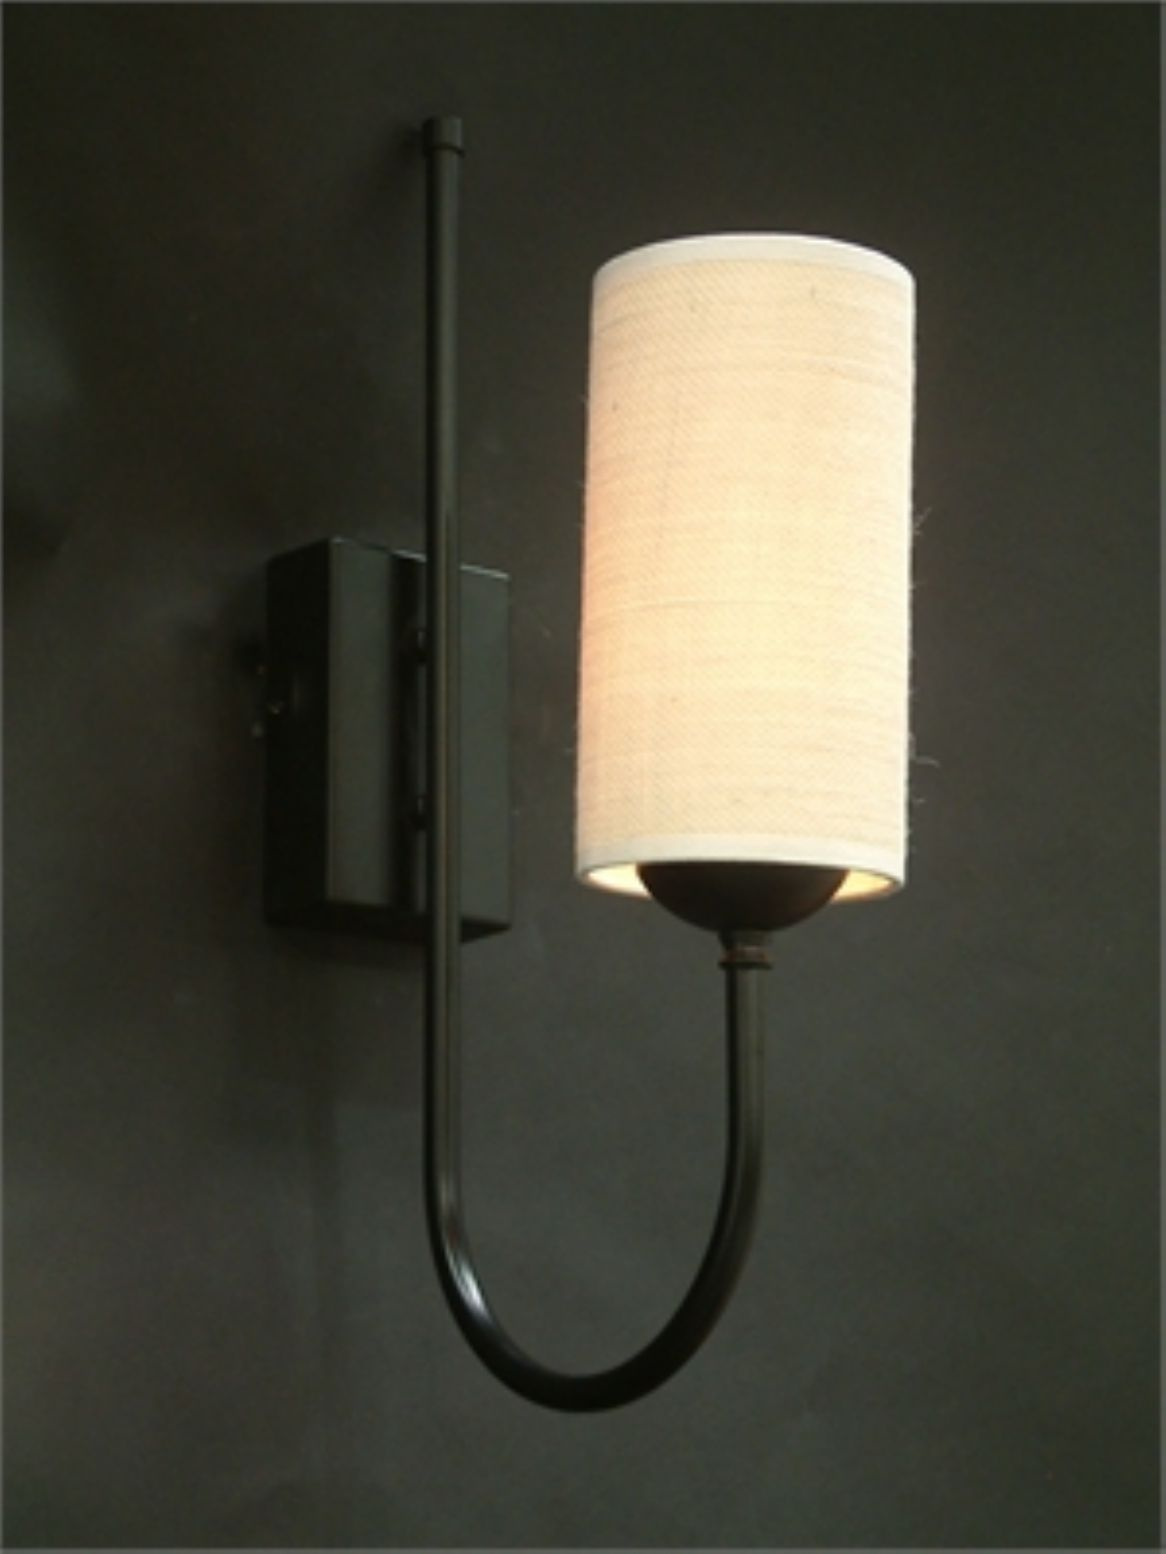 Single wall light in black with hessian shade lighting pinterest single wall light in black with hessian shade aloadofball Choice Image